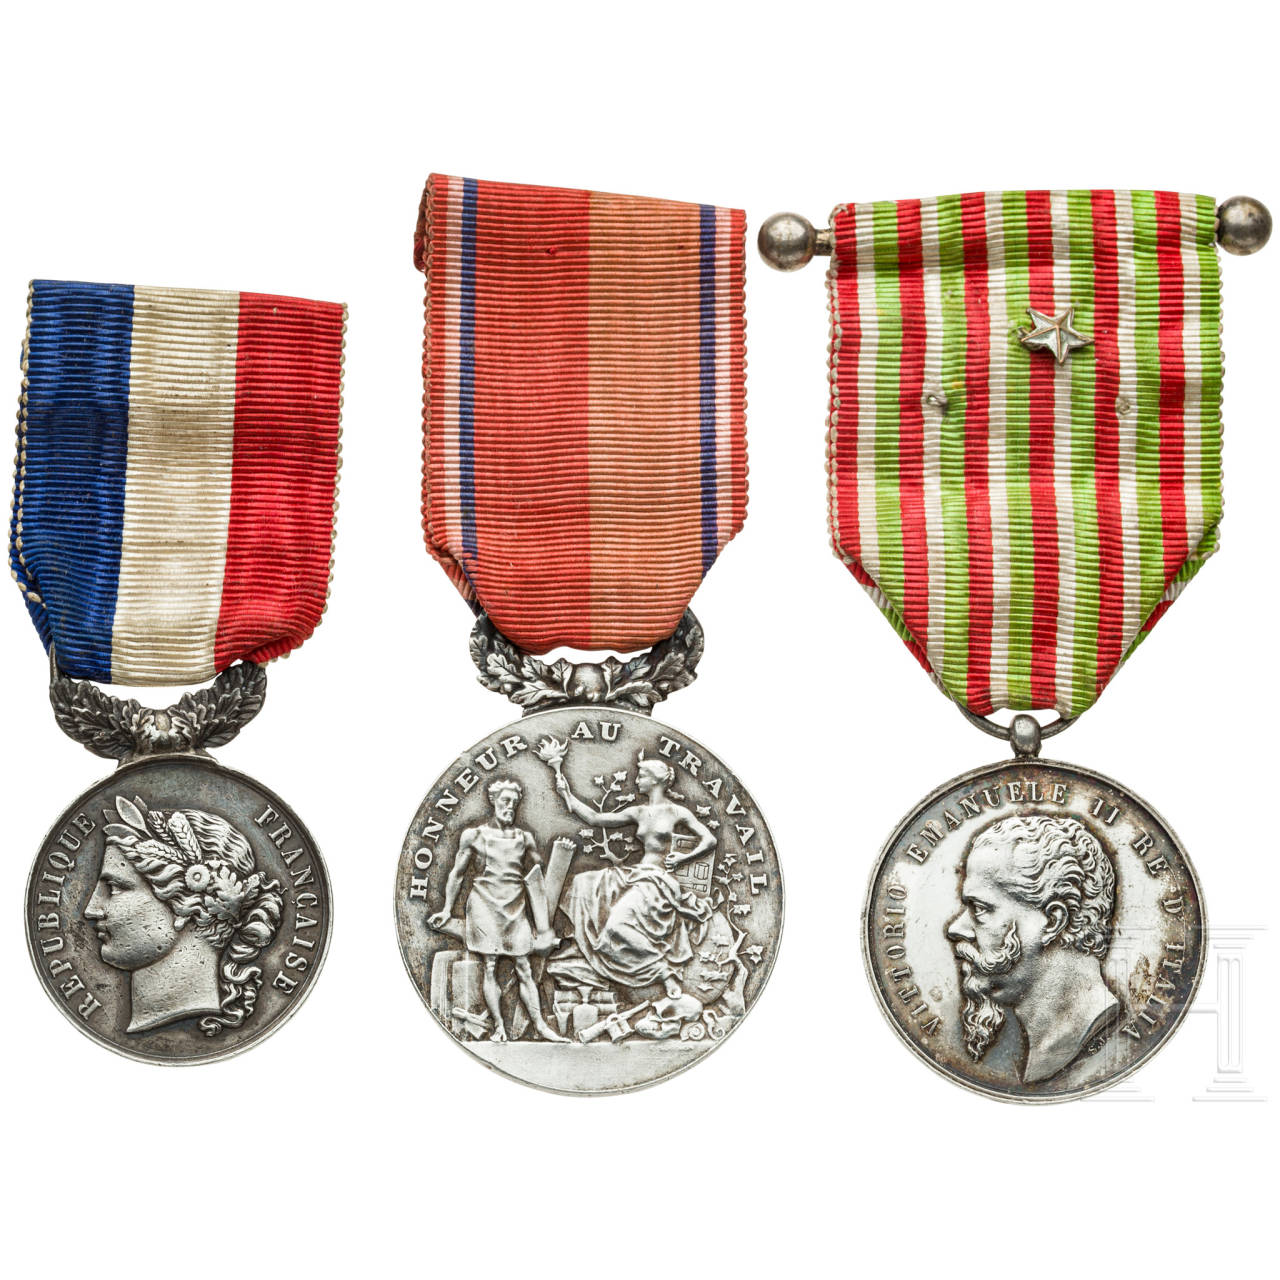 Military medal, France/Italy, late 19th century